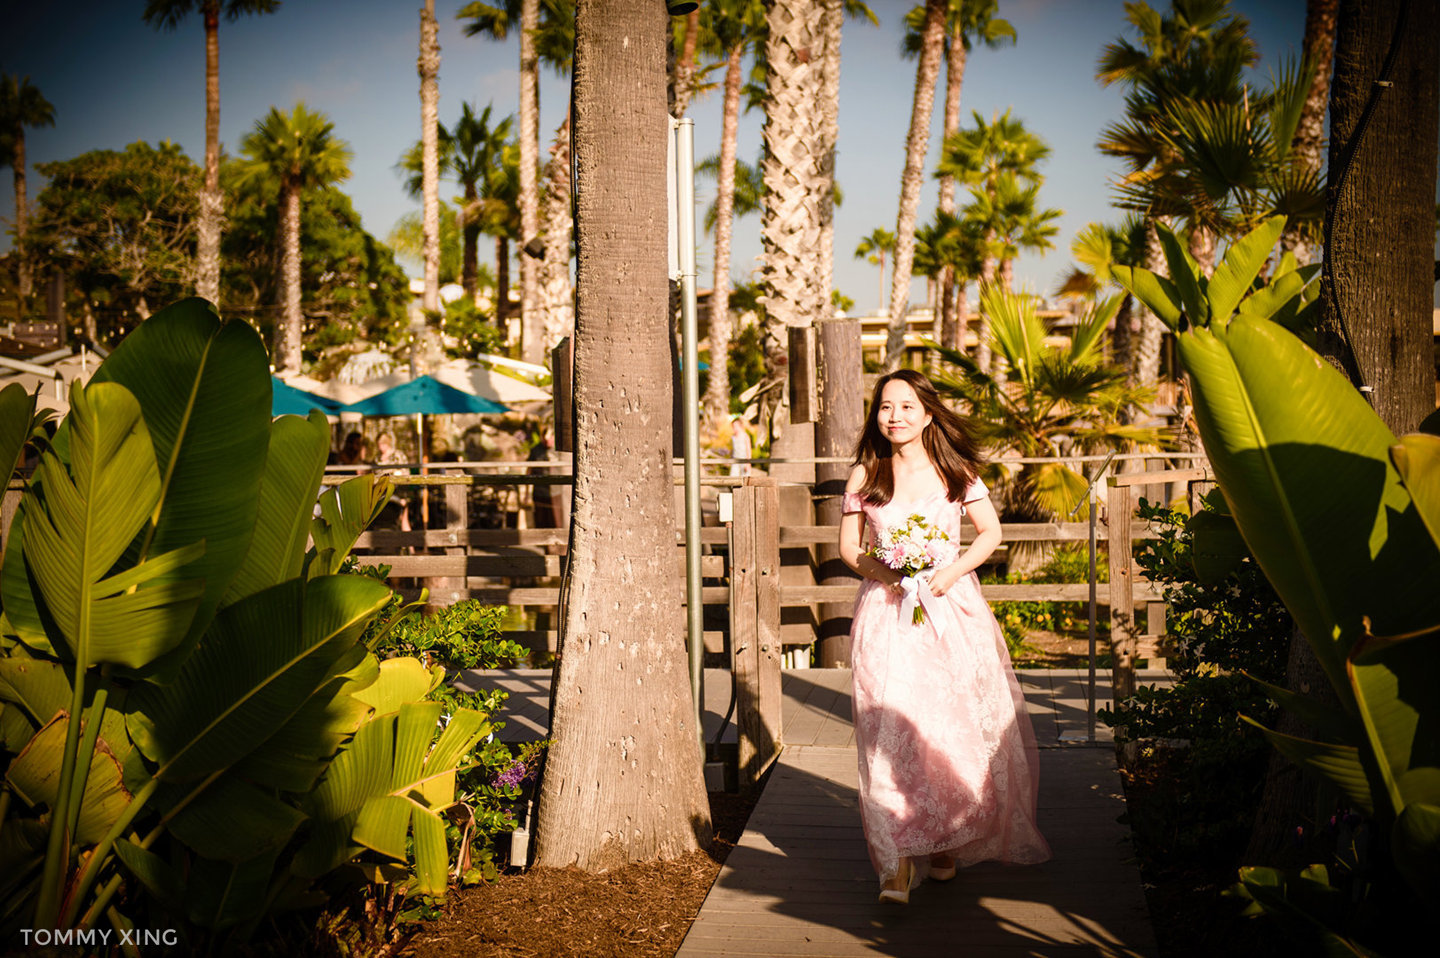 Paradise Point Resort Wedding Xiaolu & Bin San Diego 圣地亚哥婚礼摄影跟拍 Tommy Xing Photography 洛杉矶婚礼婚纱照摄影师 091.jpg